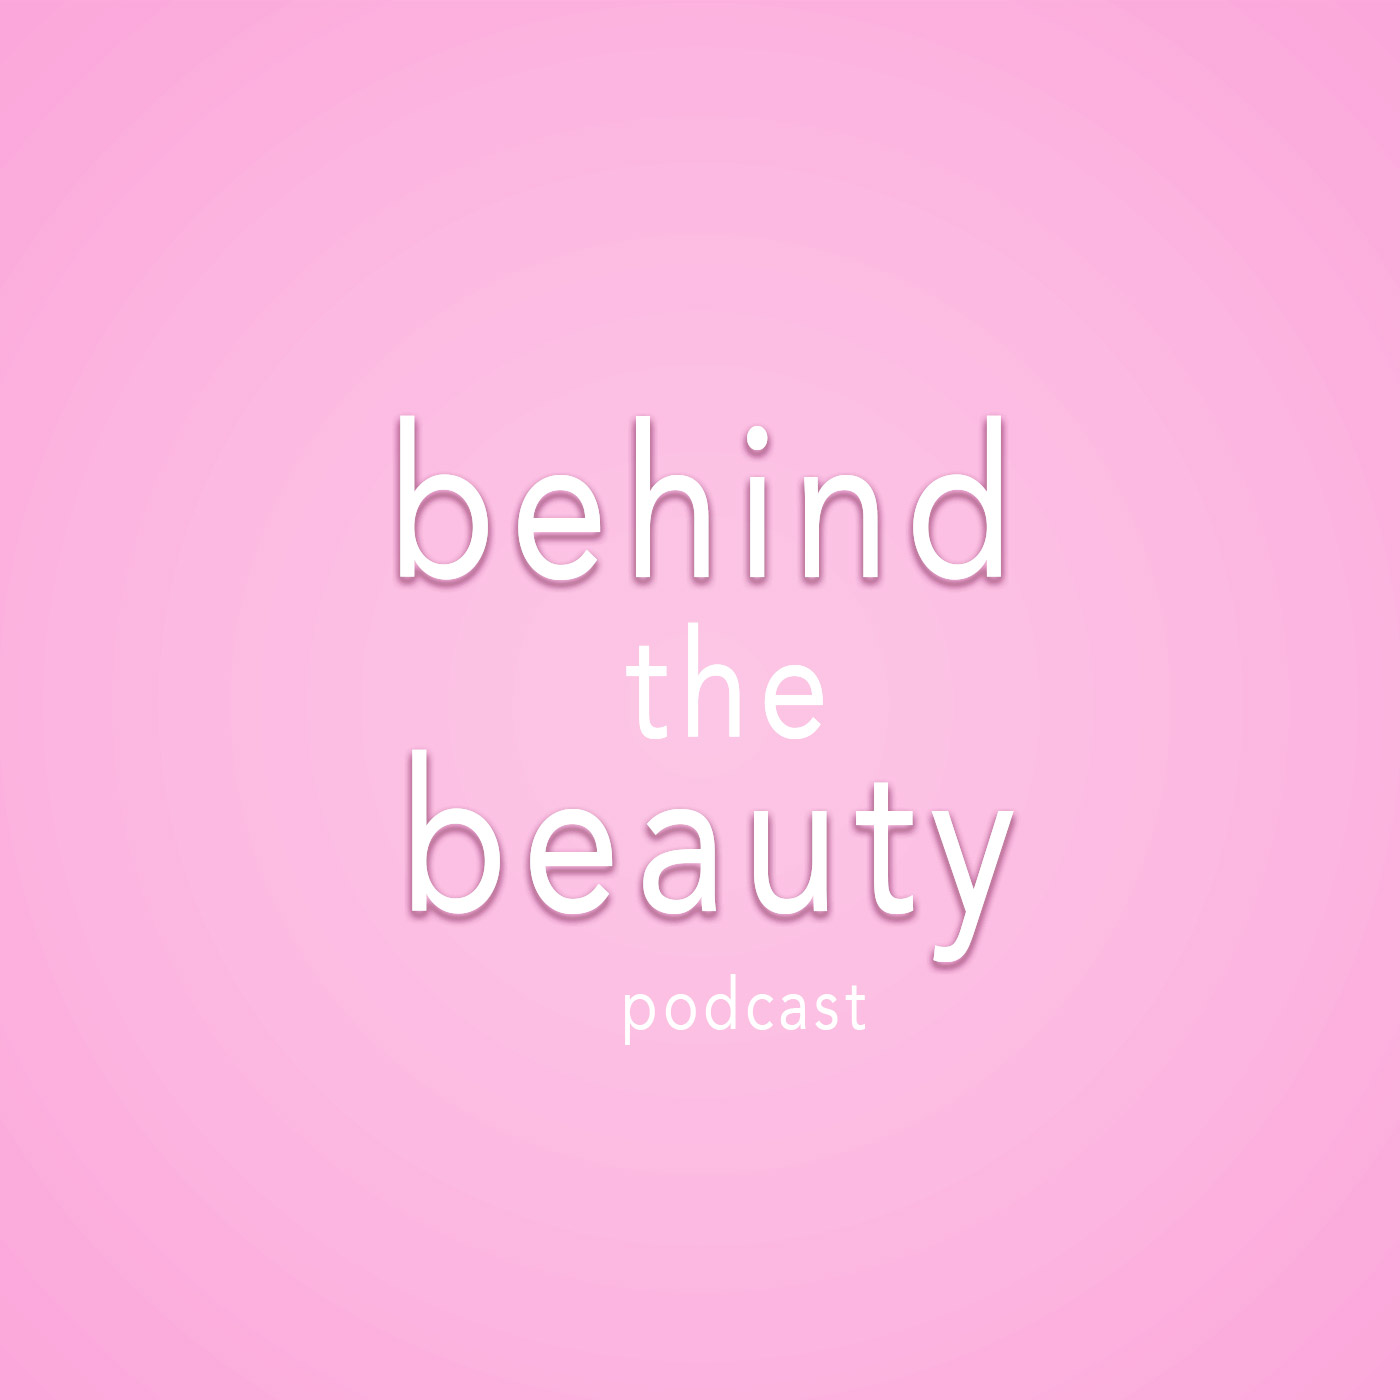 51: The worlds most expensive makeup brushes and the importance of mentors in business